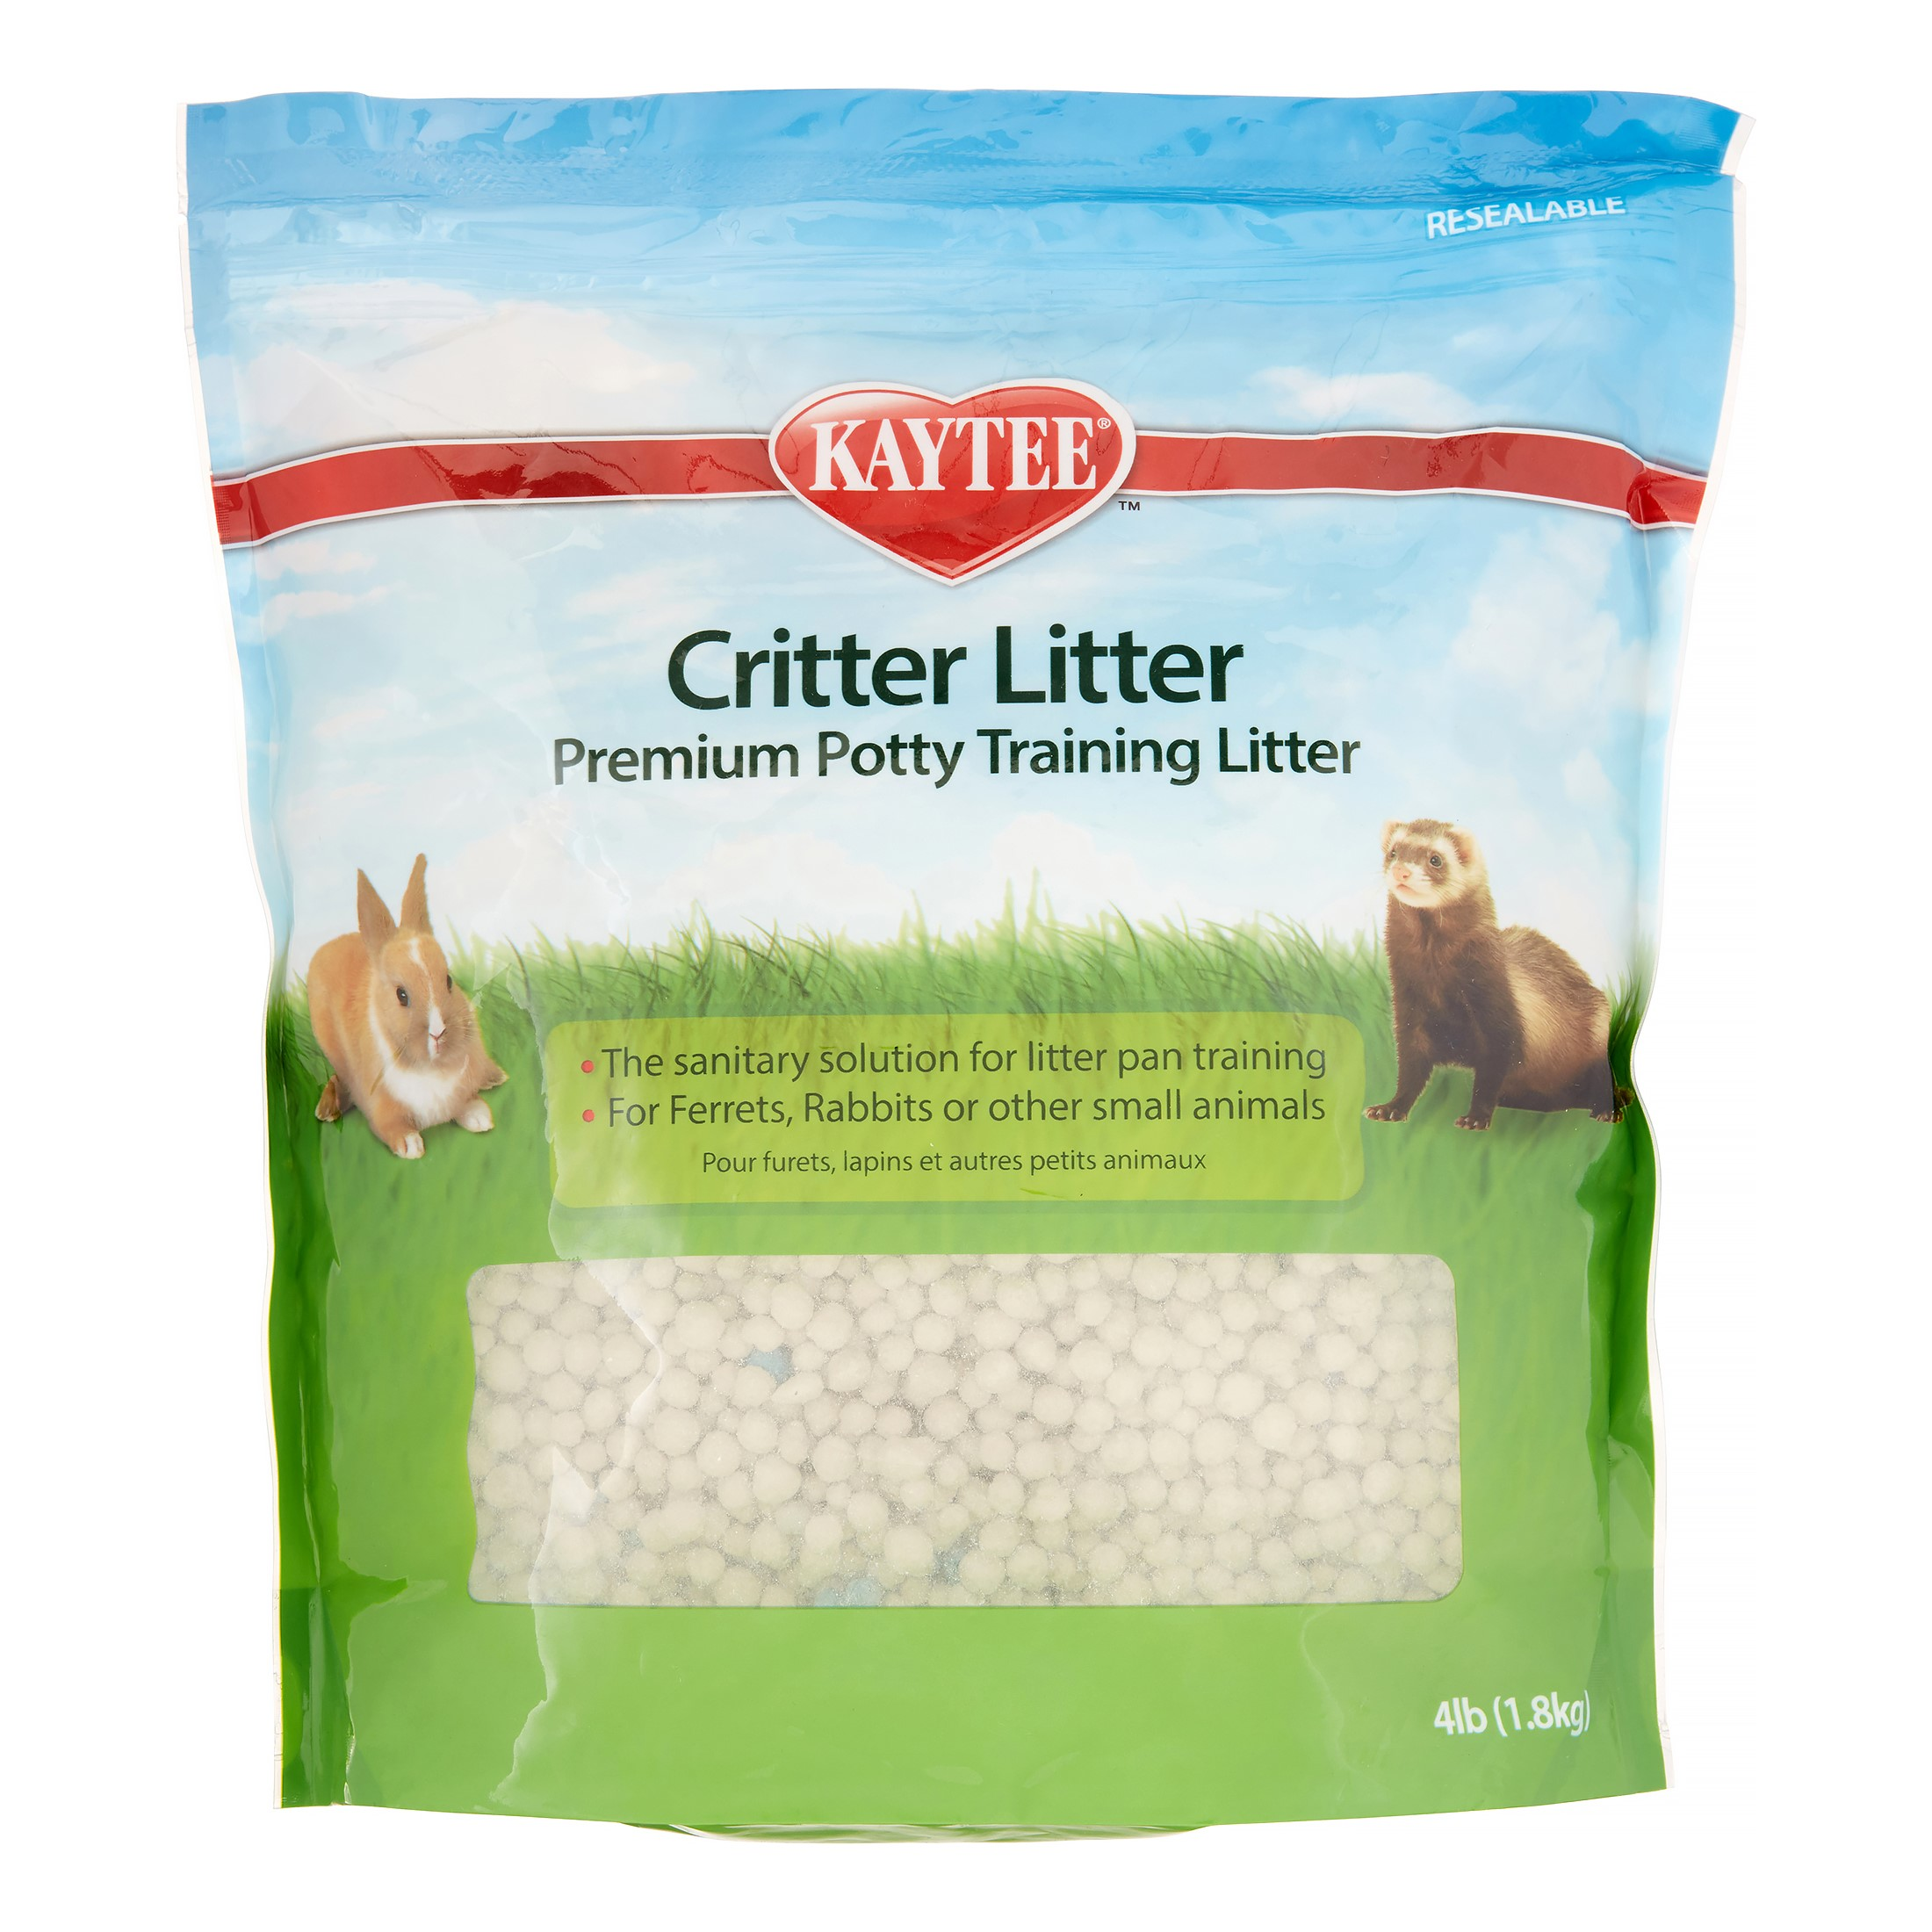 Kaytee Critter Litter Premium Potty Training Pearls, Small Animal Litter, 4-lb